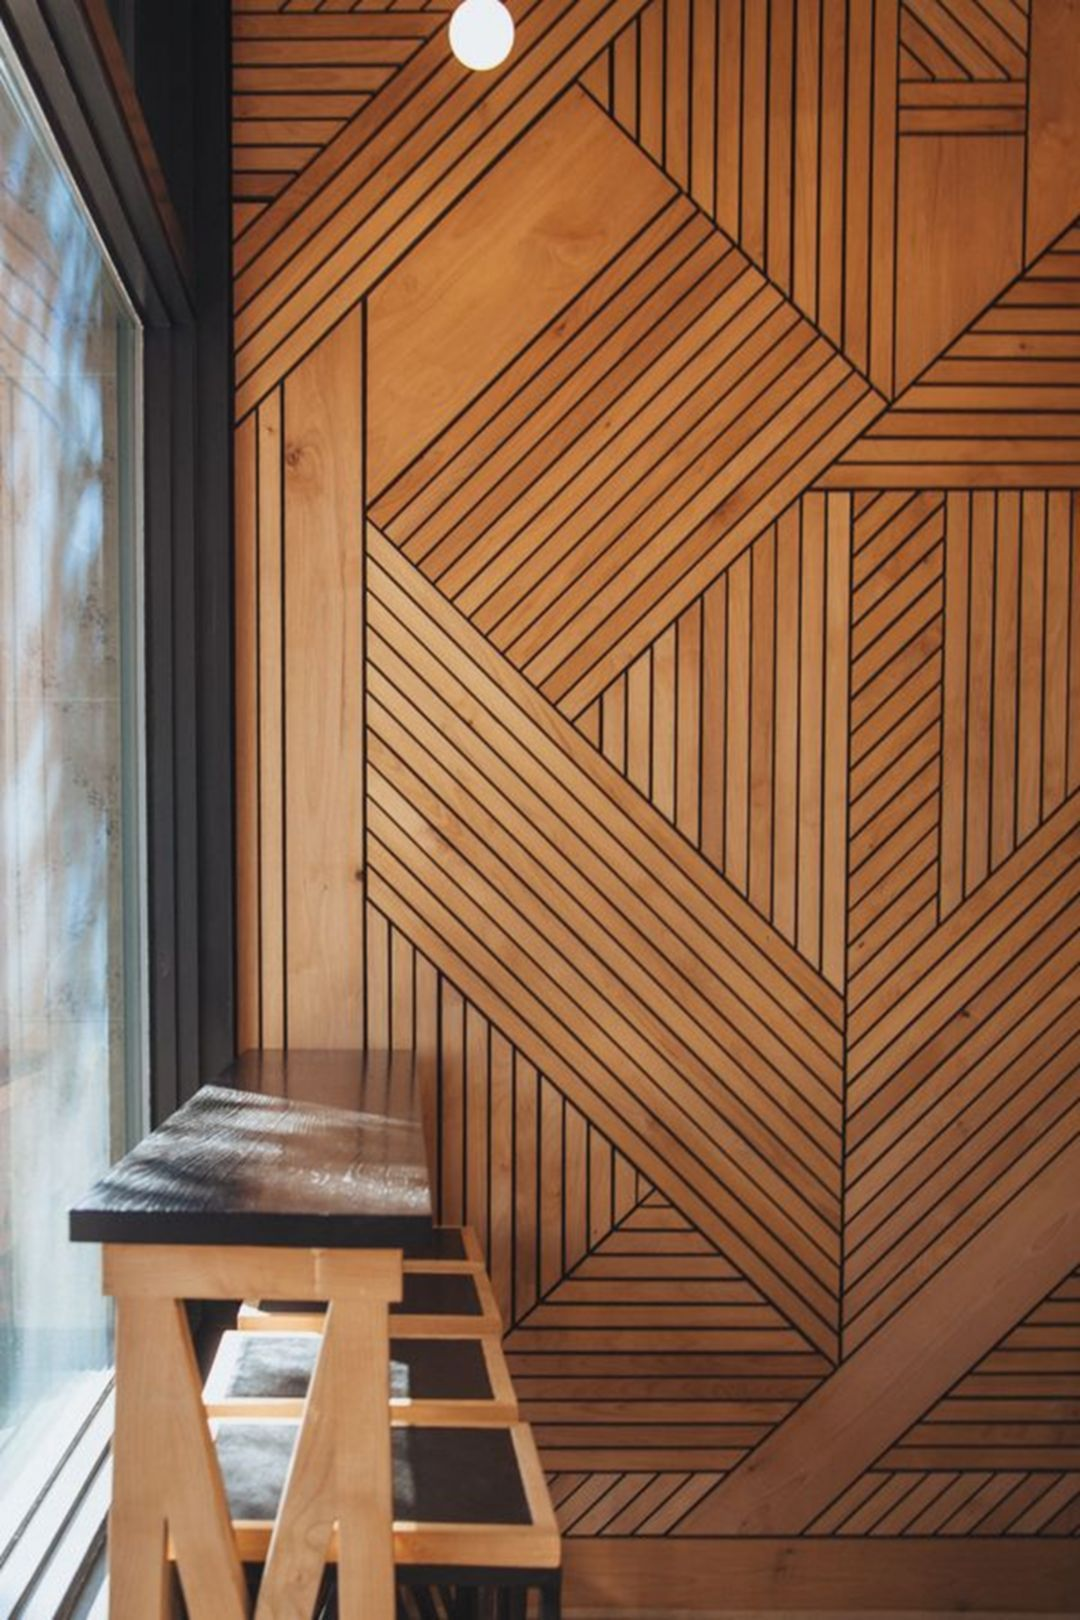 25 Amazing Wood Wall Covering Ideas For Amazing Home Interior